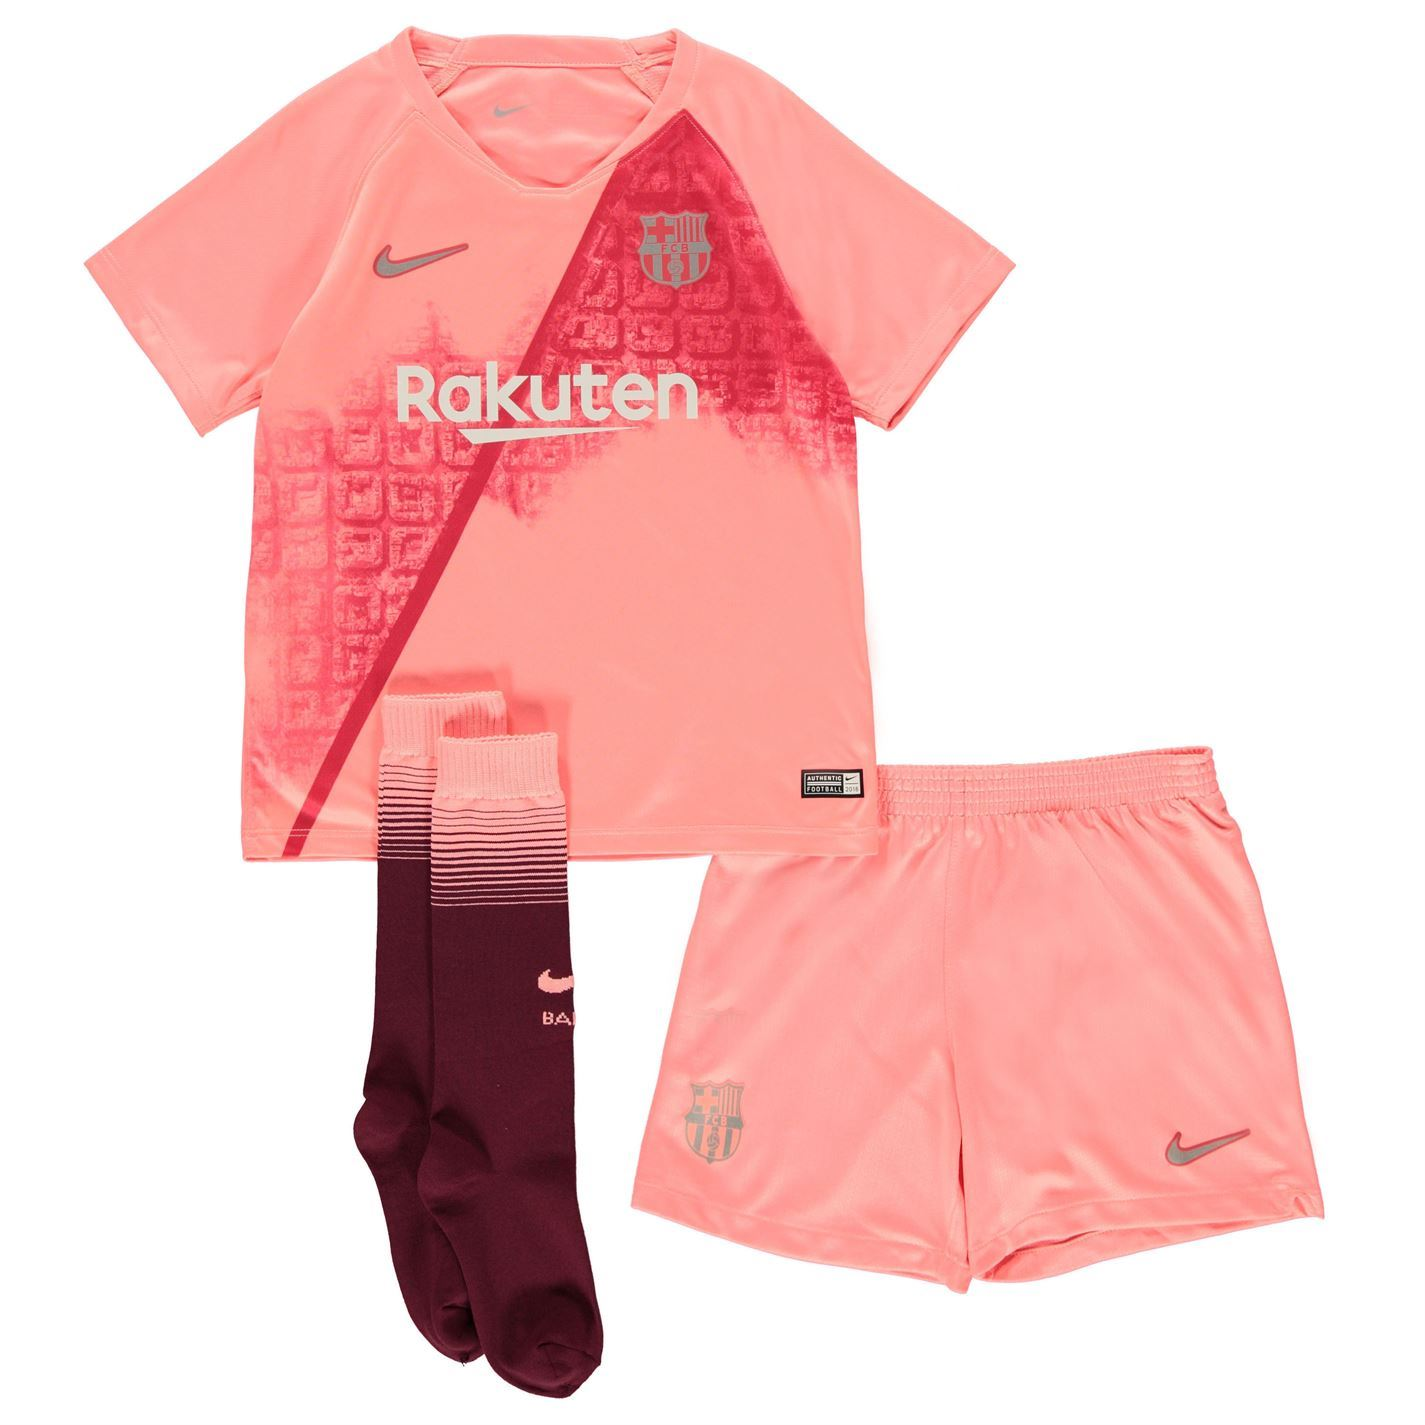 new concept de547 dea86 Details about Nike Barcelona Third Mini Kit 2018 19 Infants Pink/Silver  Football Soccer Strip